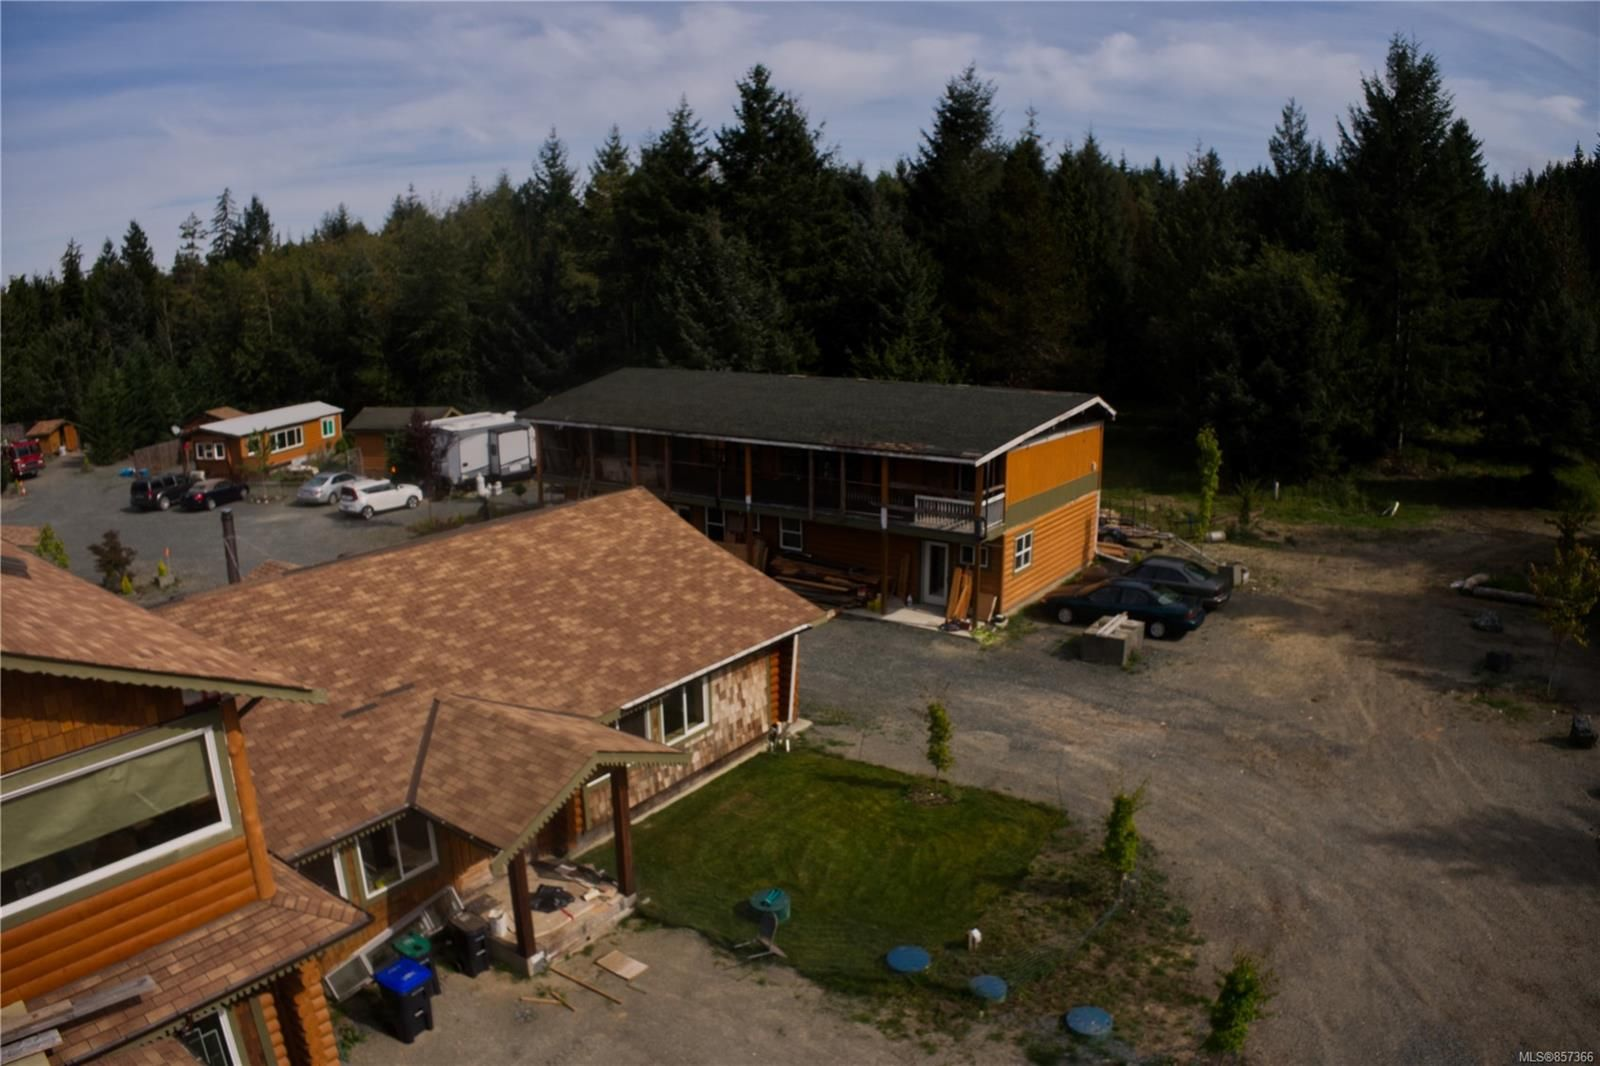 Photo 4: Photos: 1747 Nahmint Rd in : PQ Qualicum North Mixed Use for sale (Parksville/Qualicum)  : MLS®# 857366